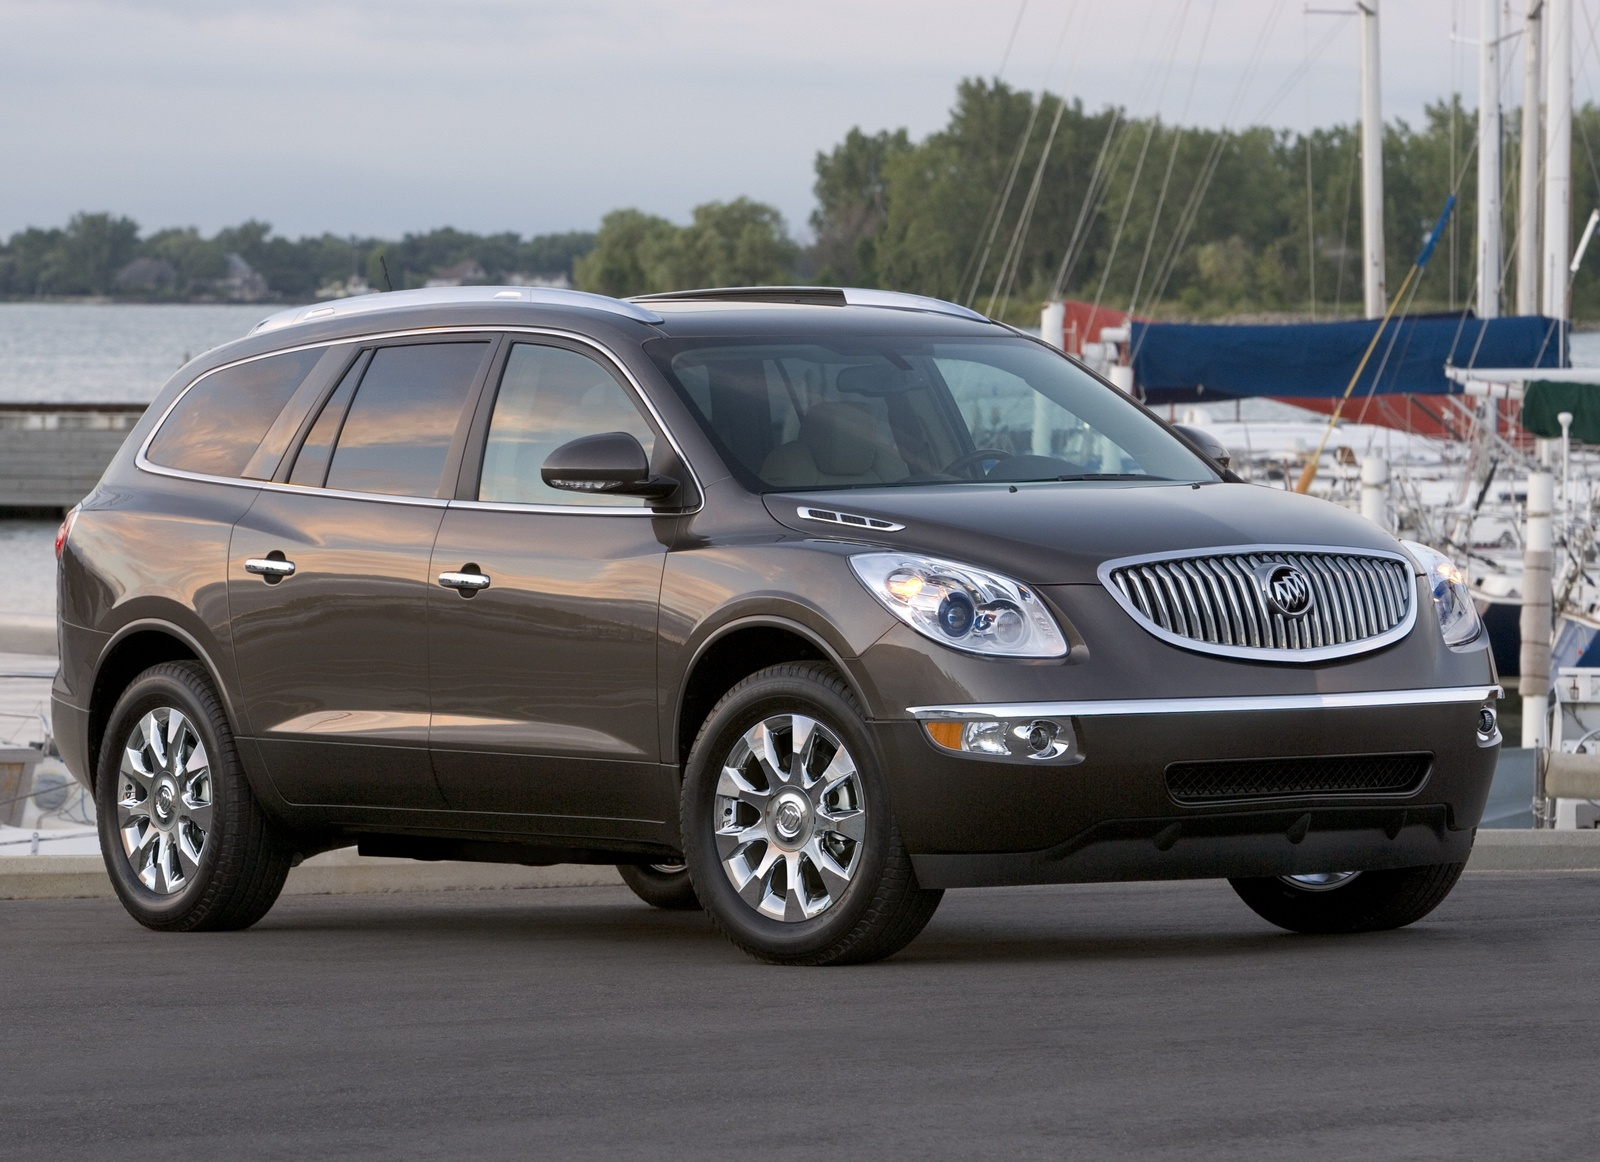 2011 Buick Enclave CXL-AWD Review